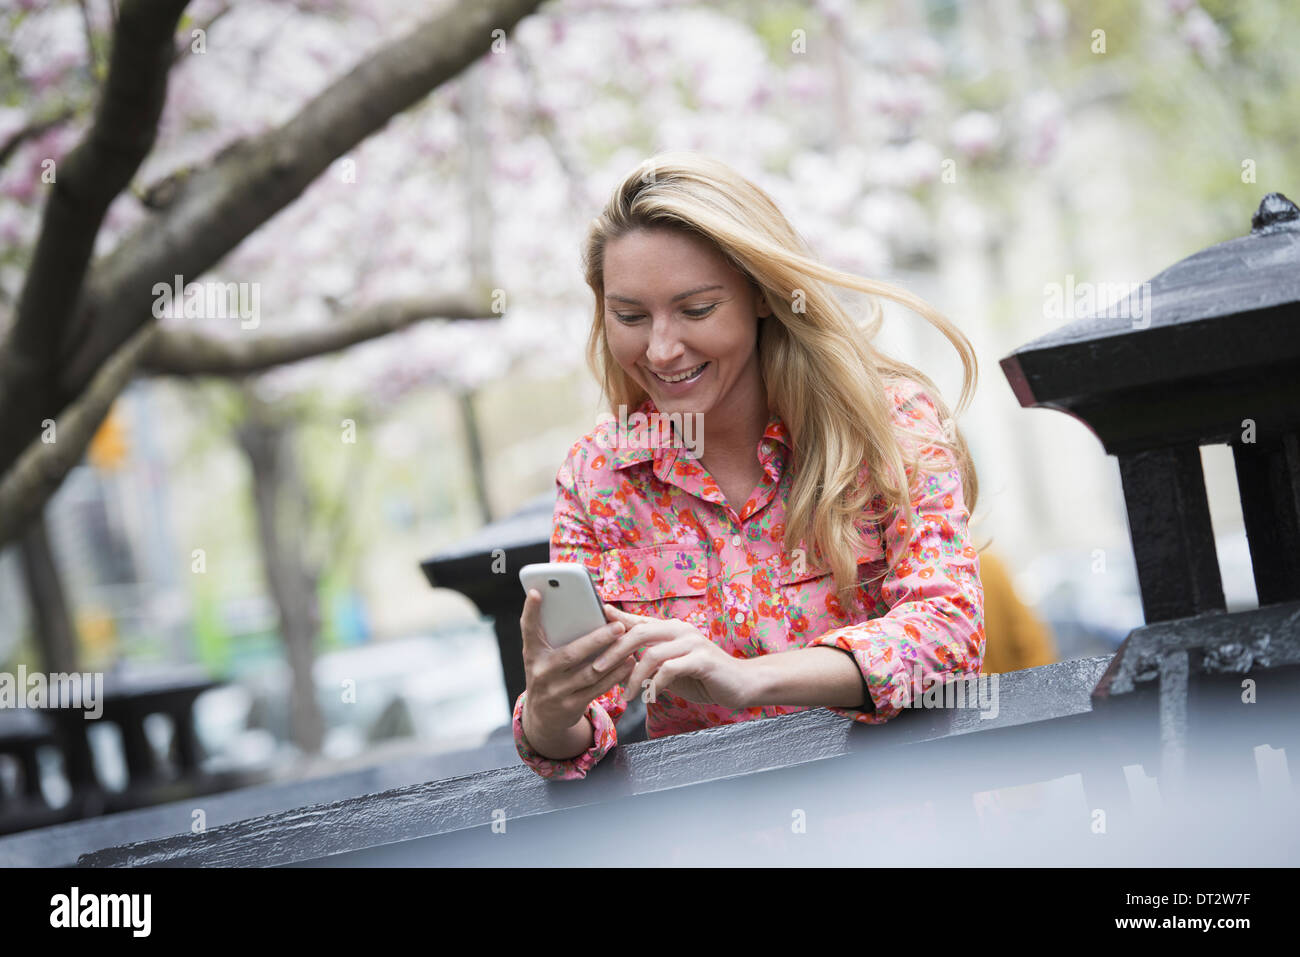 View over cityA young woman with long blonde hair sitting in a city park looking at her smart phone - Stock Image